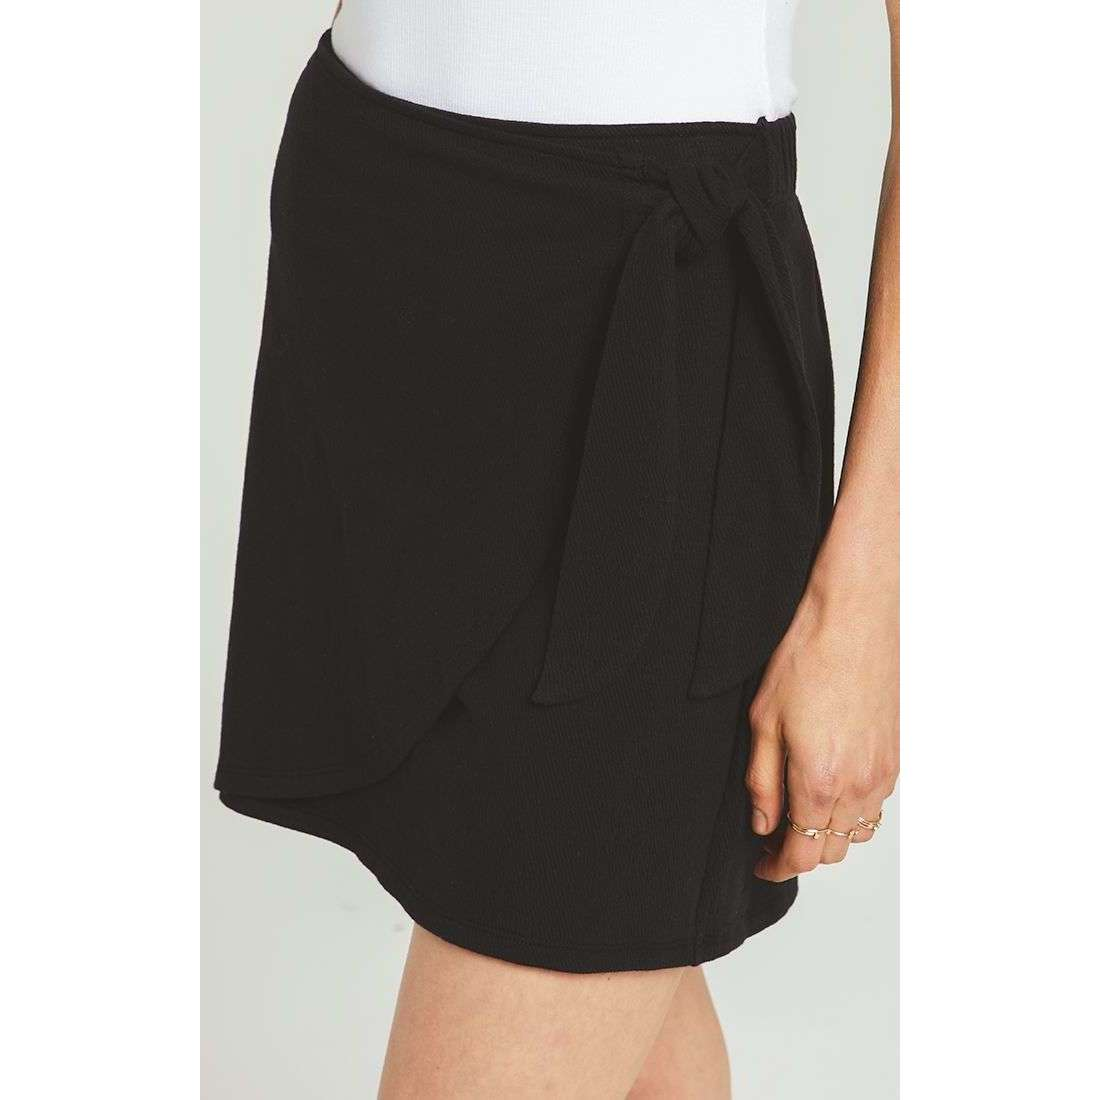 Z-SupplyBottomsZ-Supply Dawn Crinkle Skirt